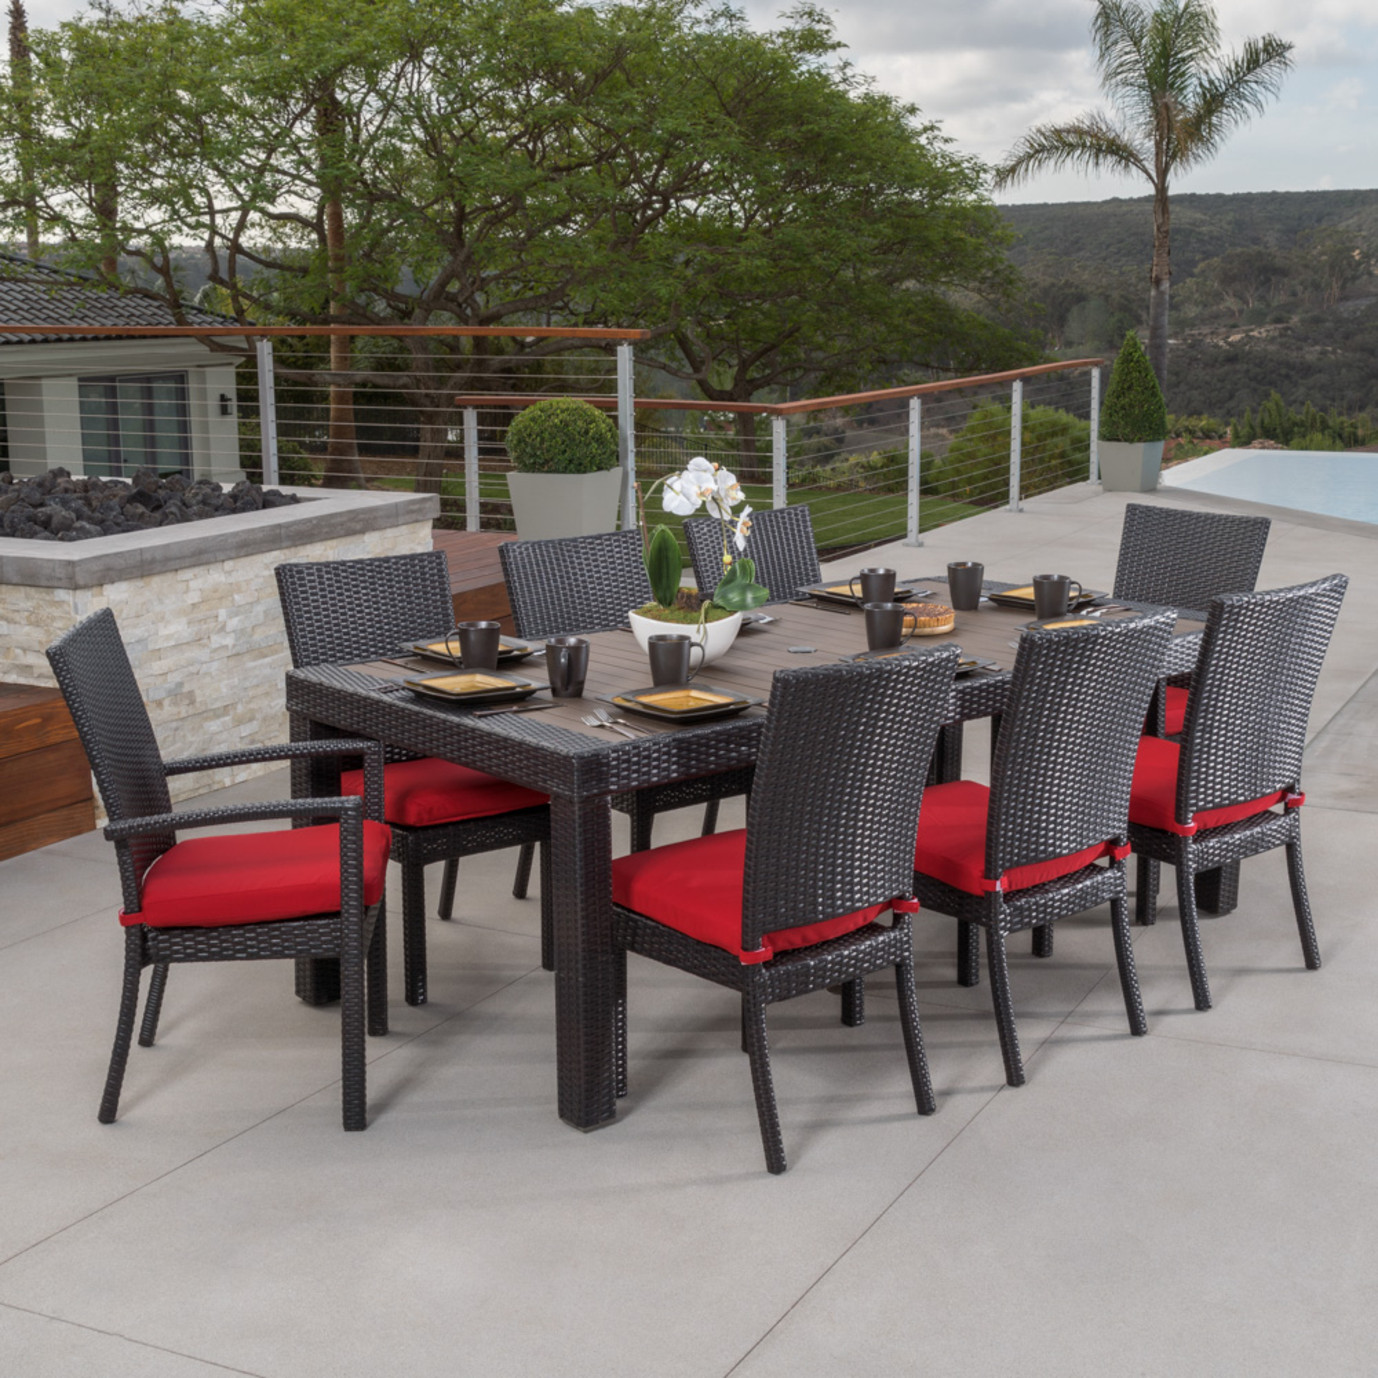 Deco™ 9 Piece Dining Set - Sunset Red